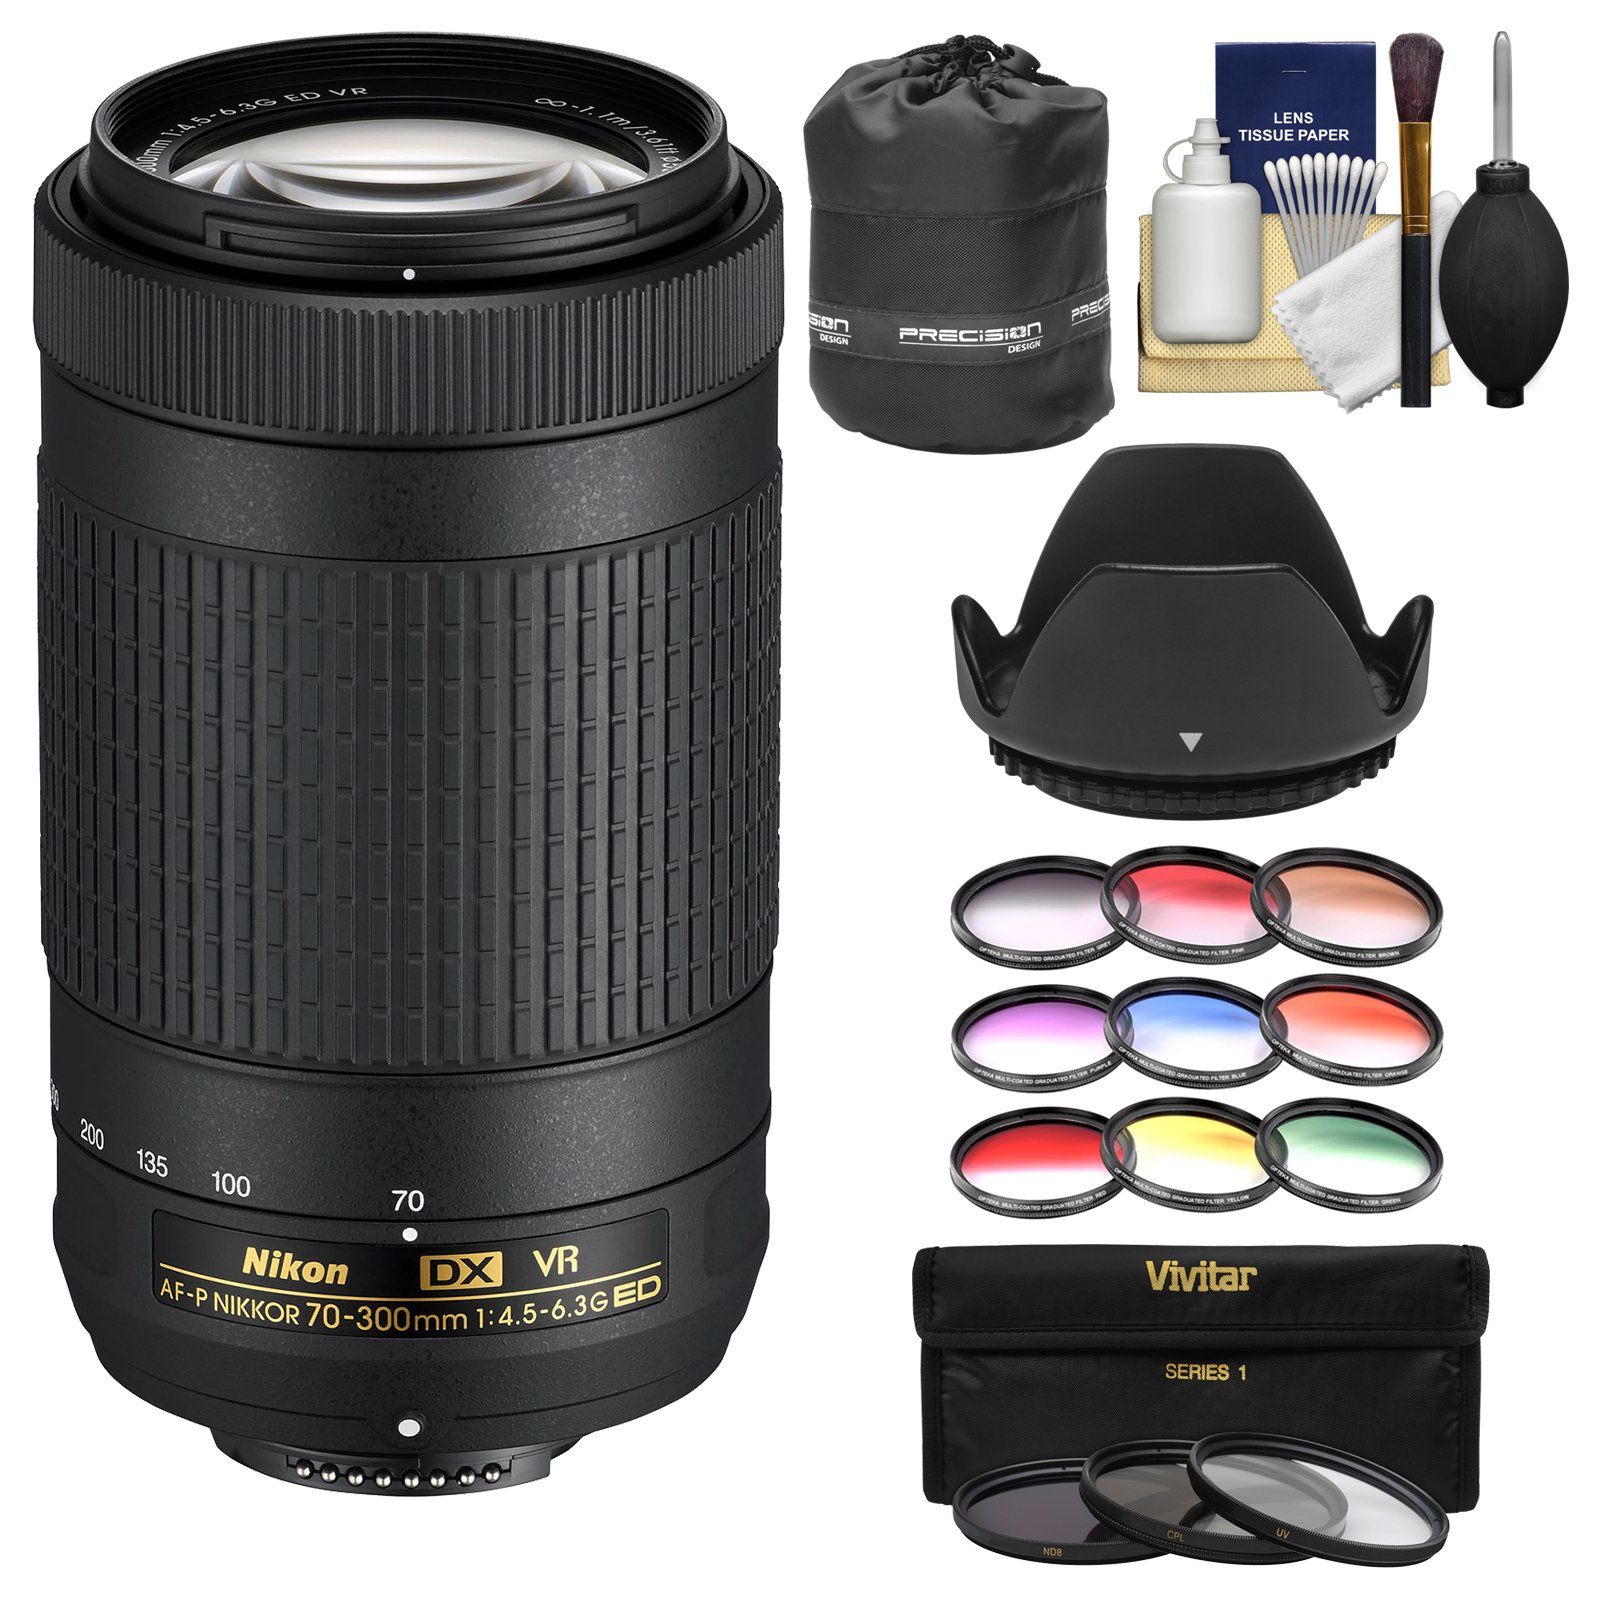 3 Piece Filter Kit UV Opteka HD2 Professional Lens /& Filter Set For The JVC GZ-MG30 MG20 D395 D250 D270 D271 D275 DVM50 DVM55 DVM75 D230 D240 D290 DX97 DX37 DX77 DX28 DVM96 DVX 27MM Package Includes 2X Telephoto Lens 0.5X Wide Angle Lens With Macro PL,